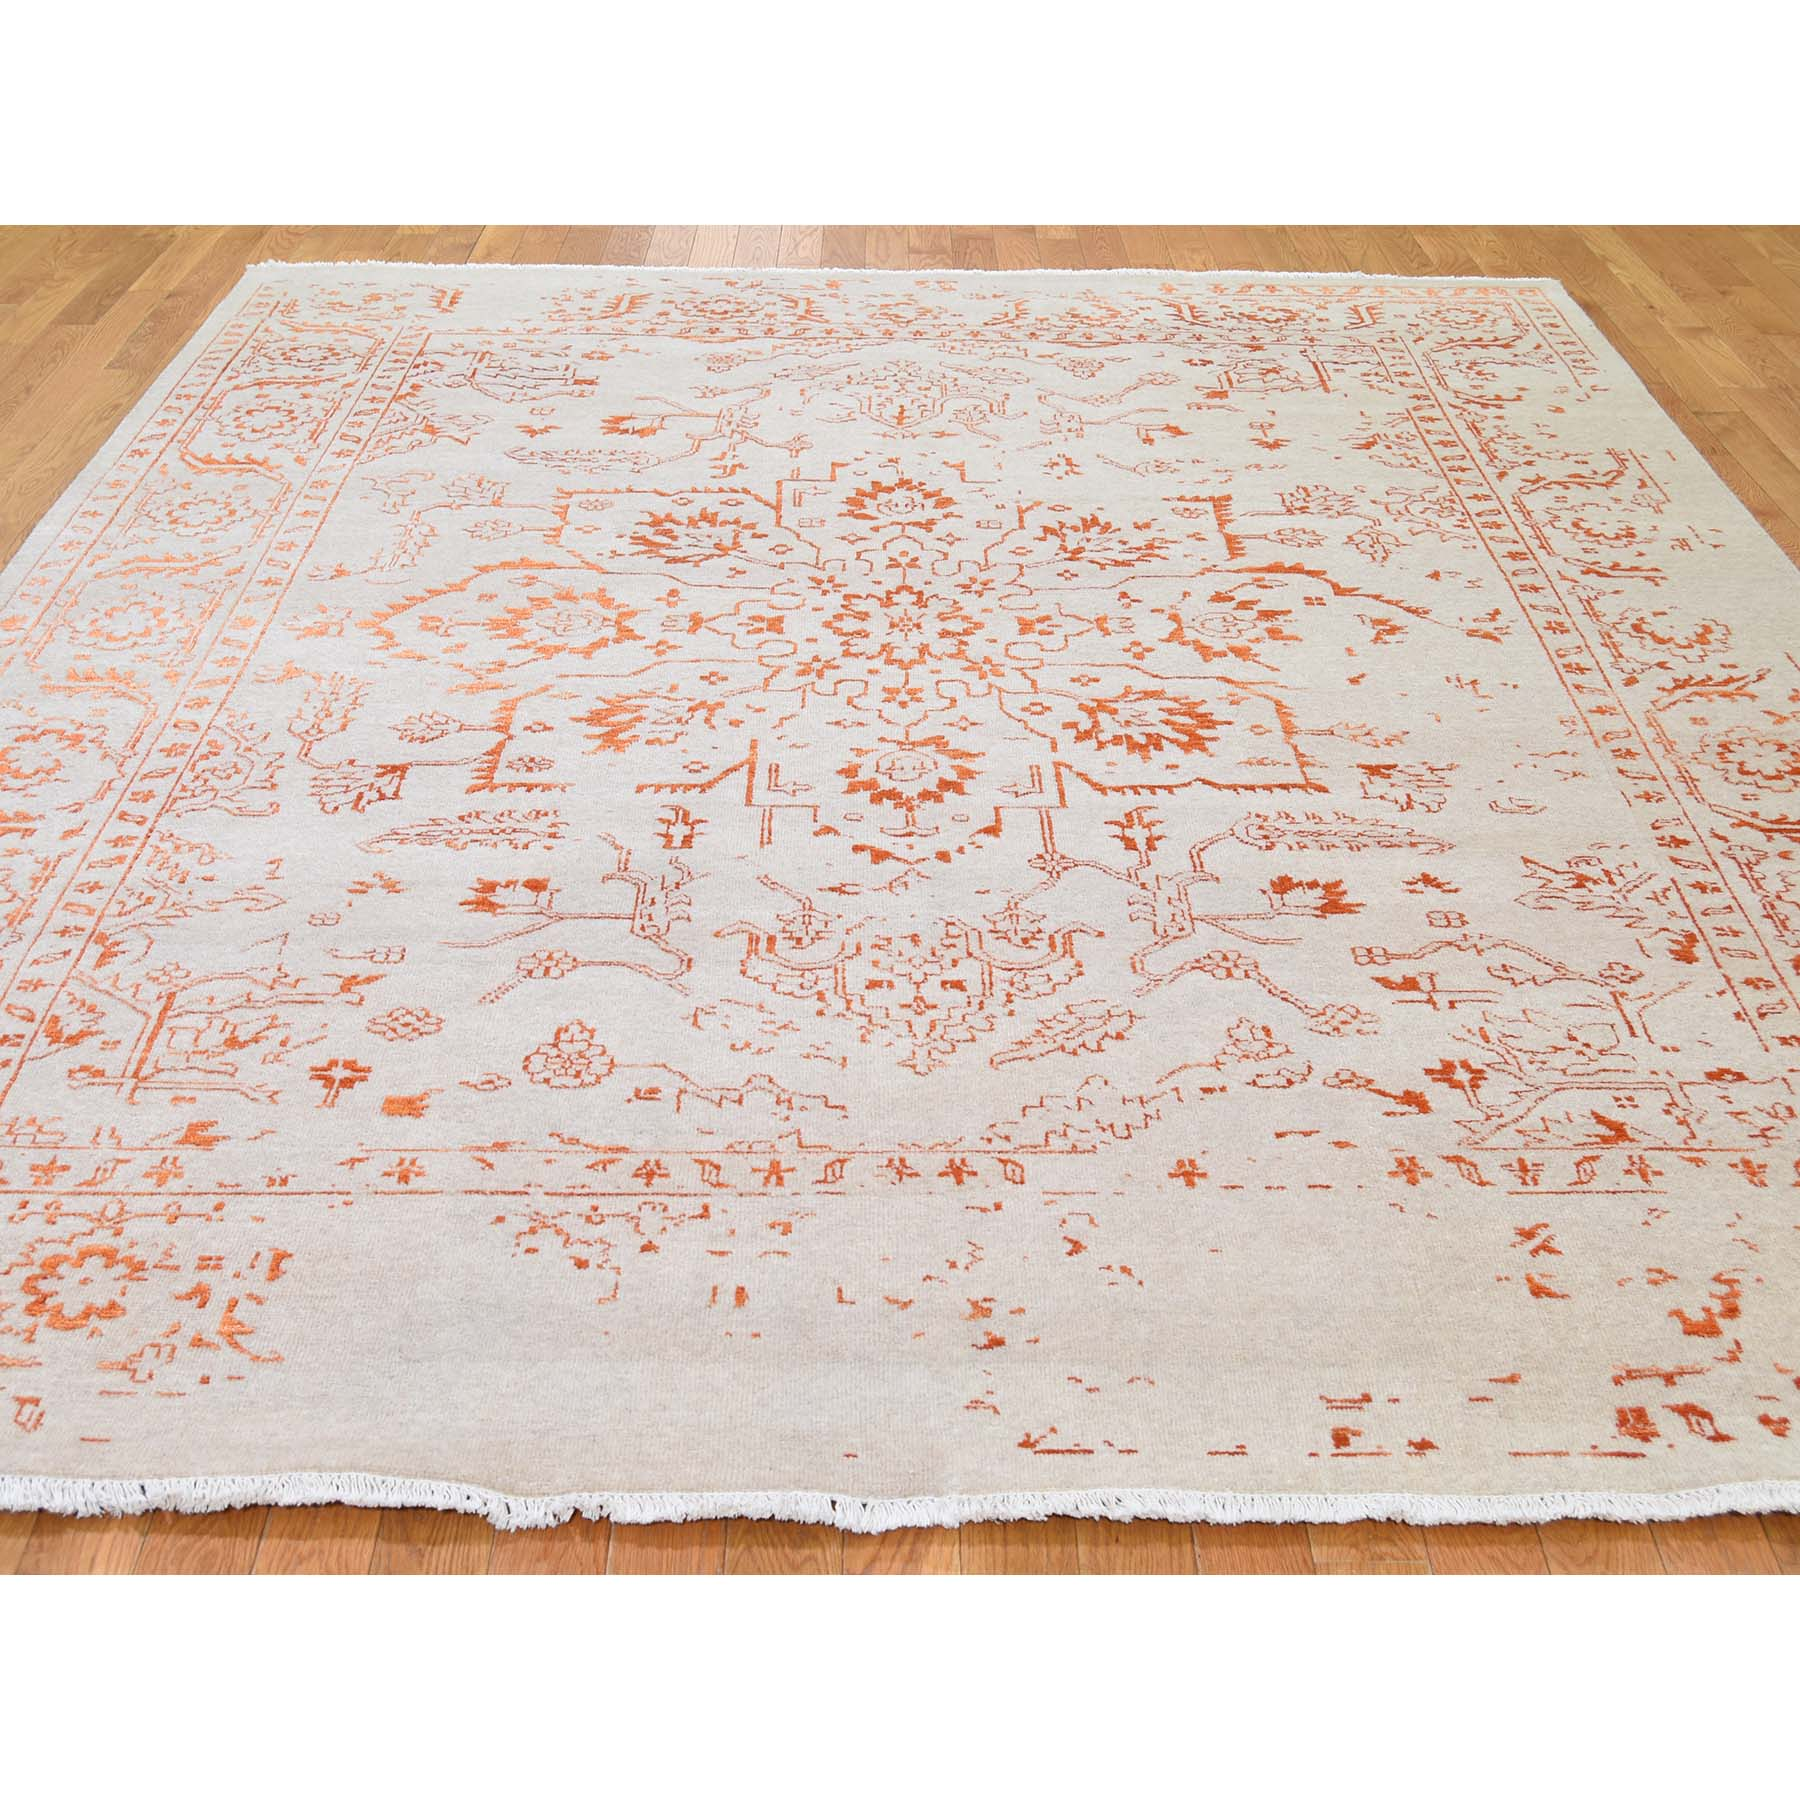 7-10 x10- Wool and Silk Heriz Broken Design Hand-Knotted Oriental Rug